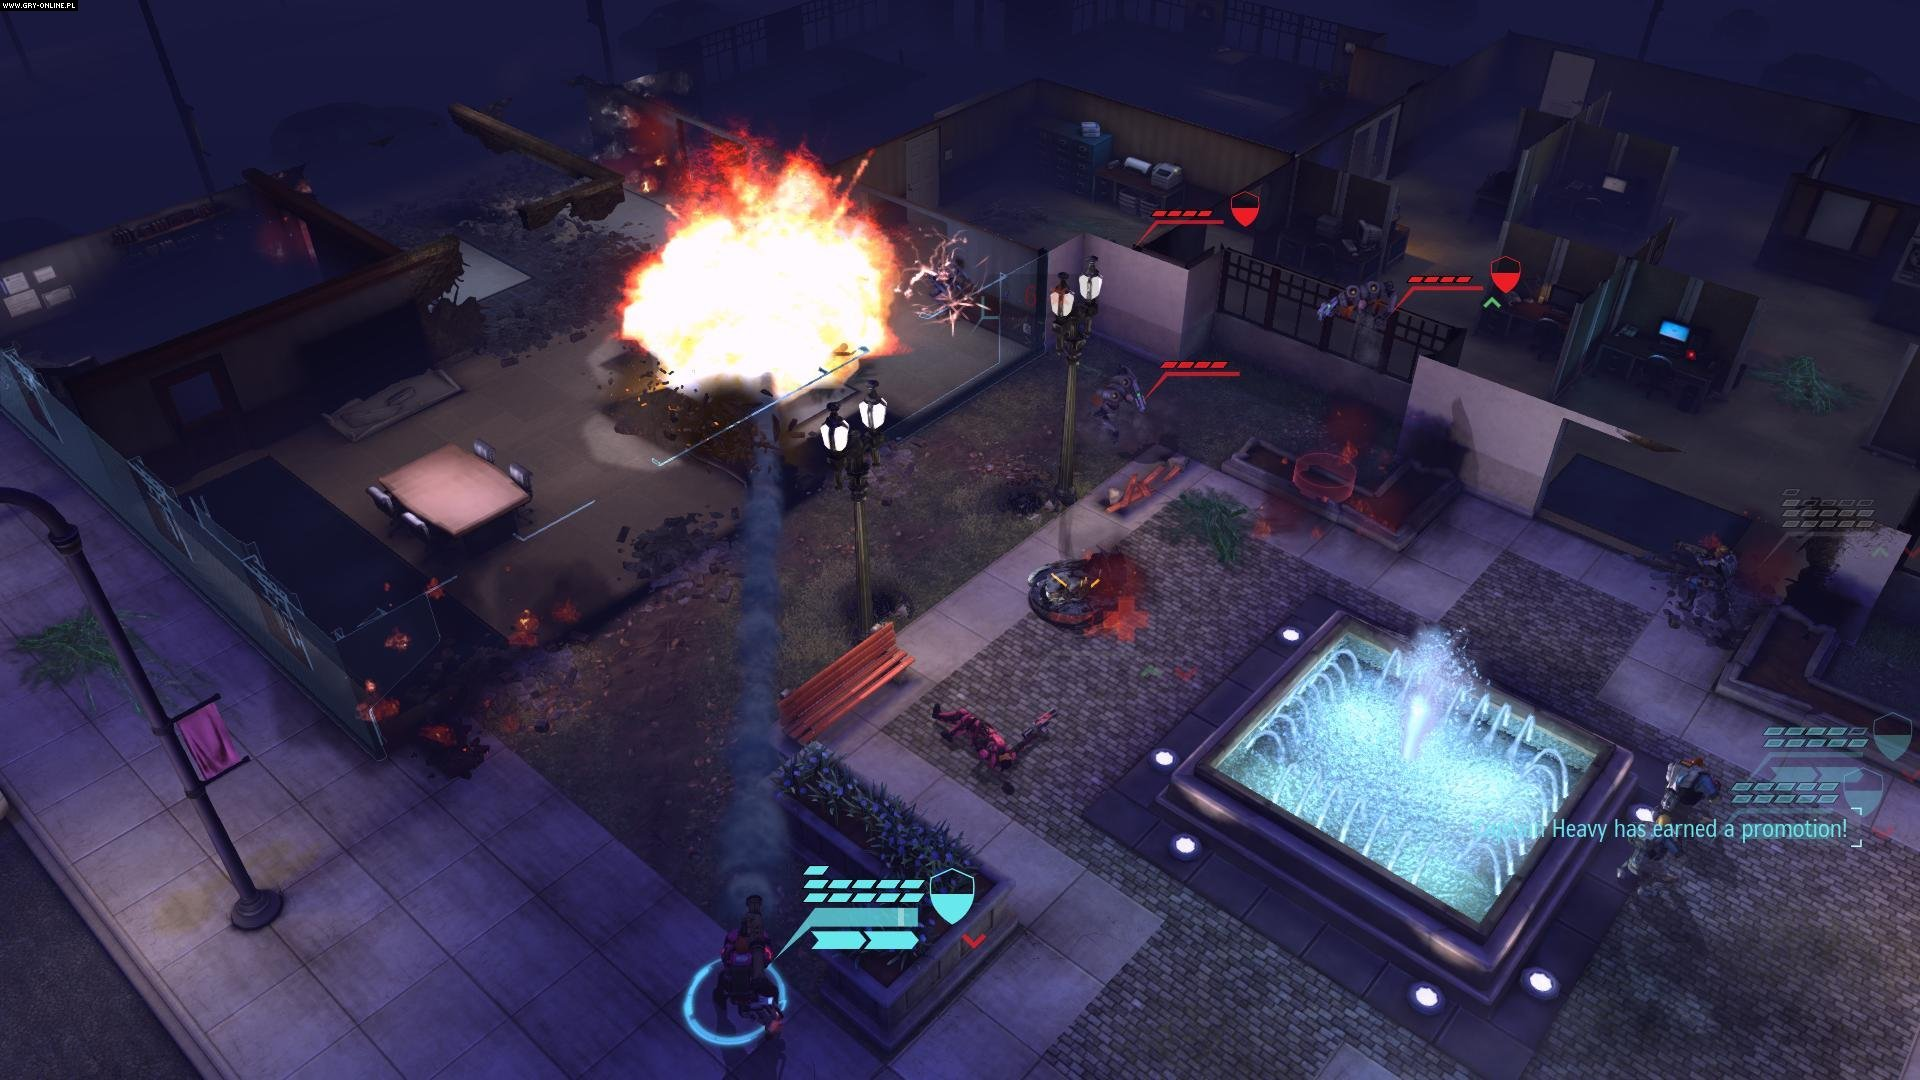 XCOM: Enemy Unknown PC, X360, PS3 Gry Screen 103/179, Firaxis Games, 2K Games